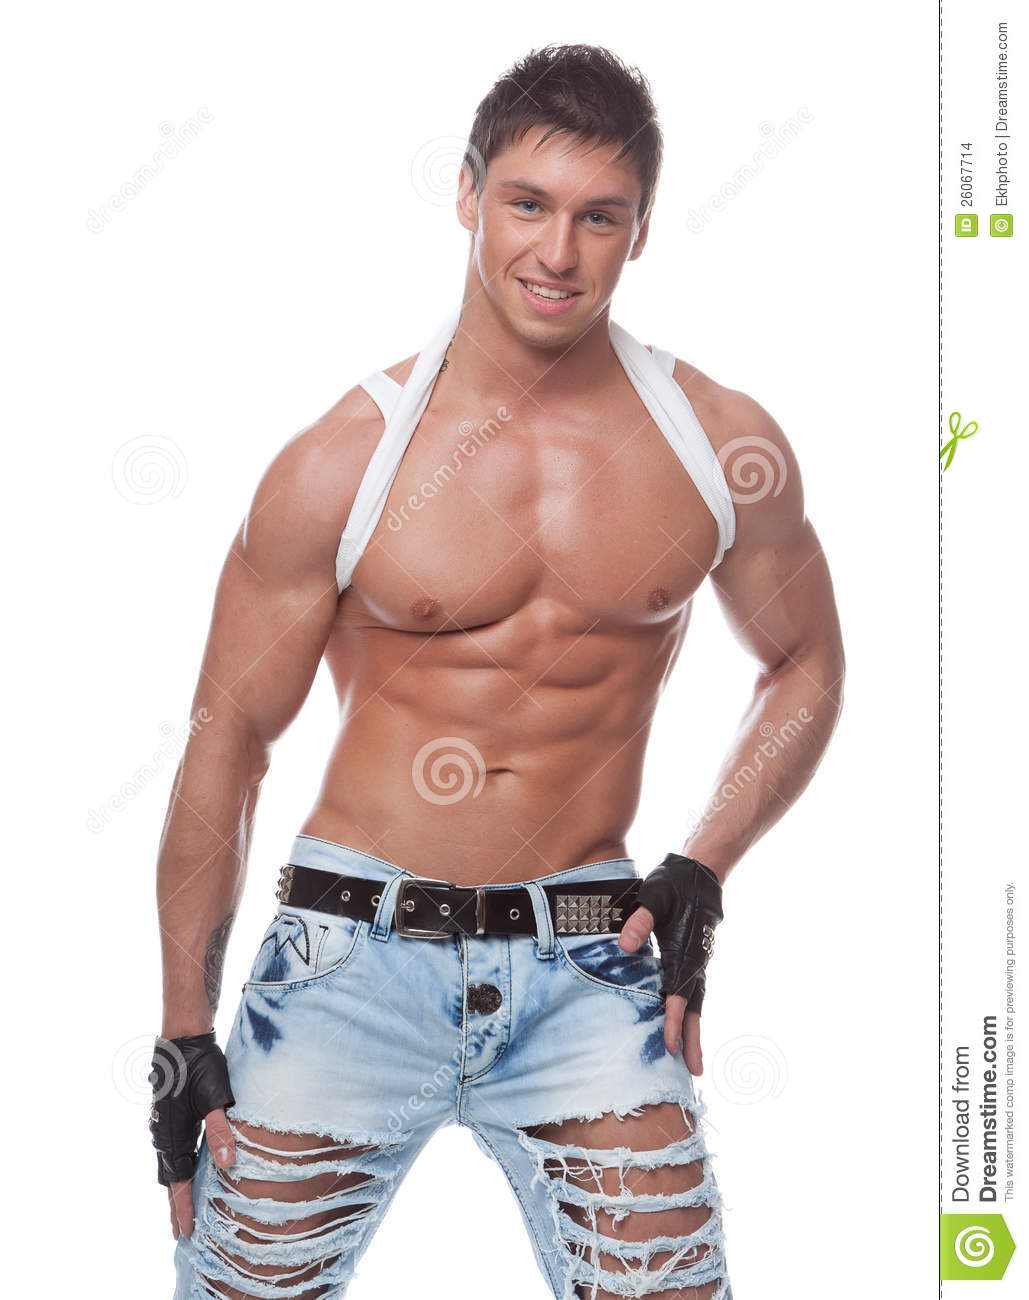 1b27aa9d Muscular Smiling Naked Guy In Blue Jeans Stock Photo - Image of ...